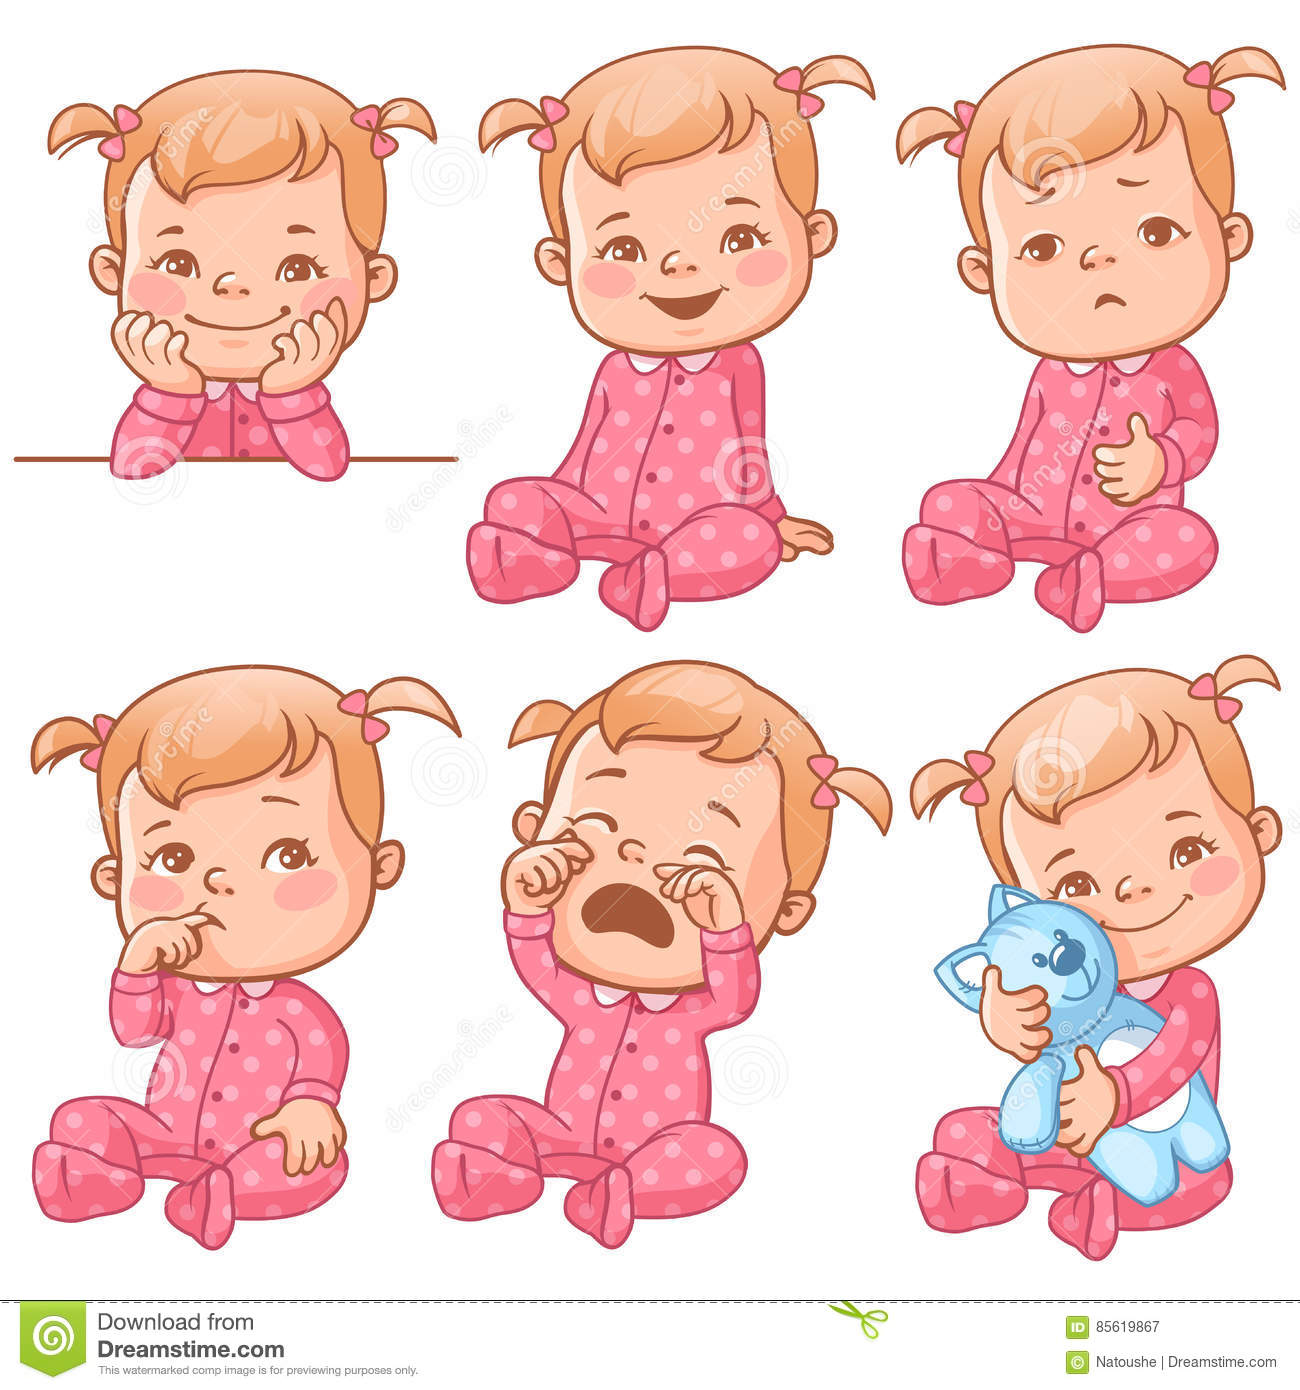 infant emotional expression Come, an emotional state of anger results, and the infant is motivated to try to remove the obstacle (eg, the second infant has an angry facial expression and pushes her.